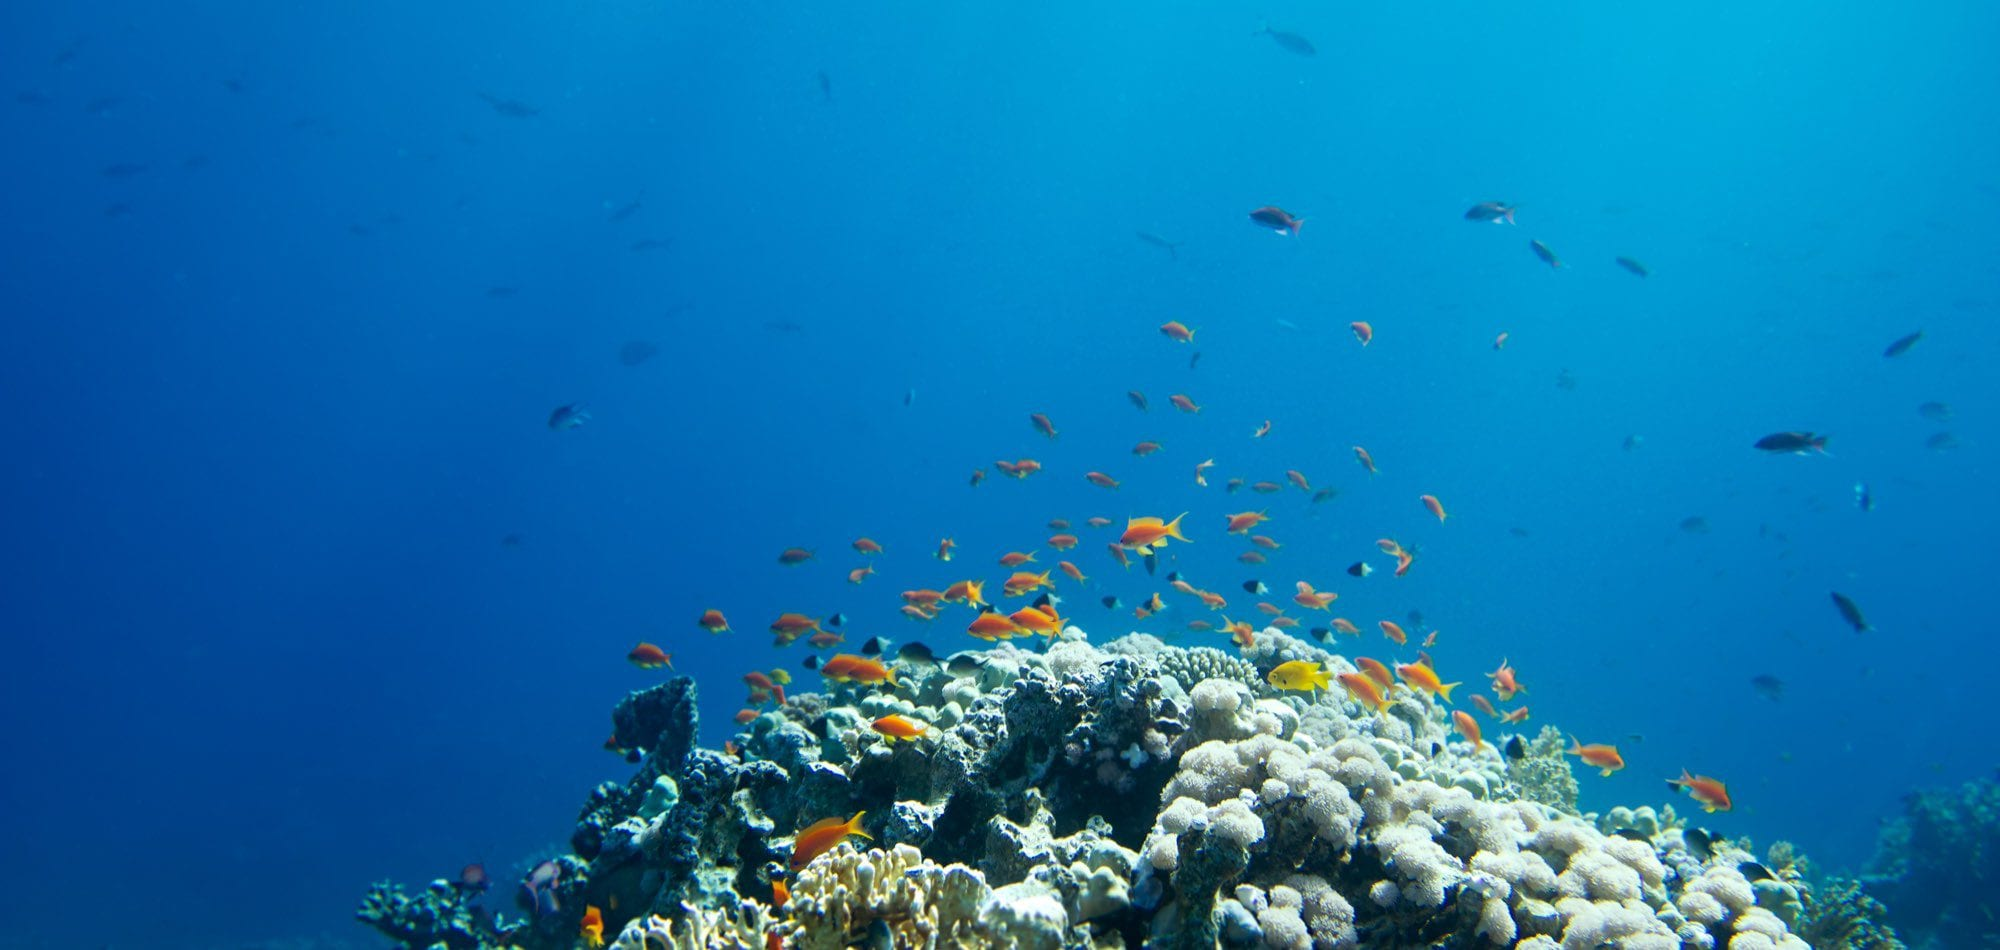 Dive In Australia - underwater image from scuba diving on the Great Barrier Reef